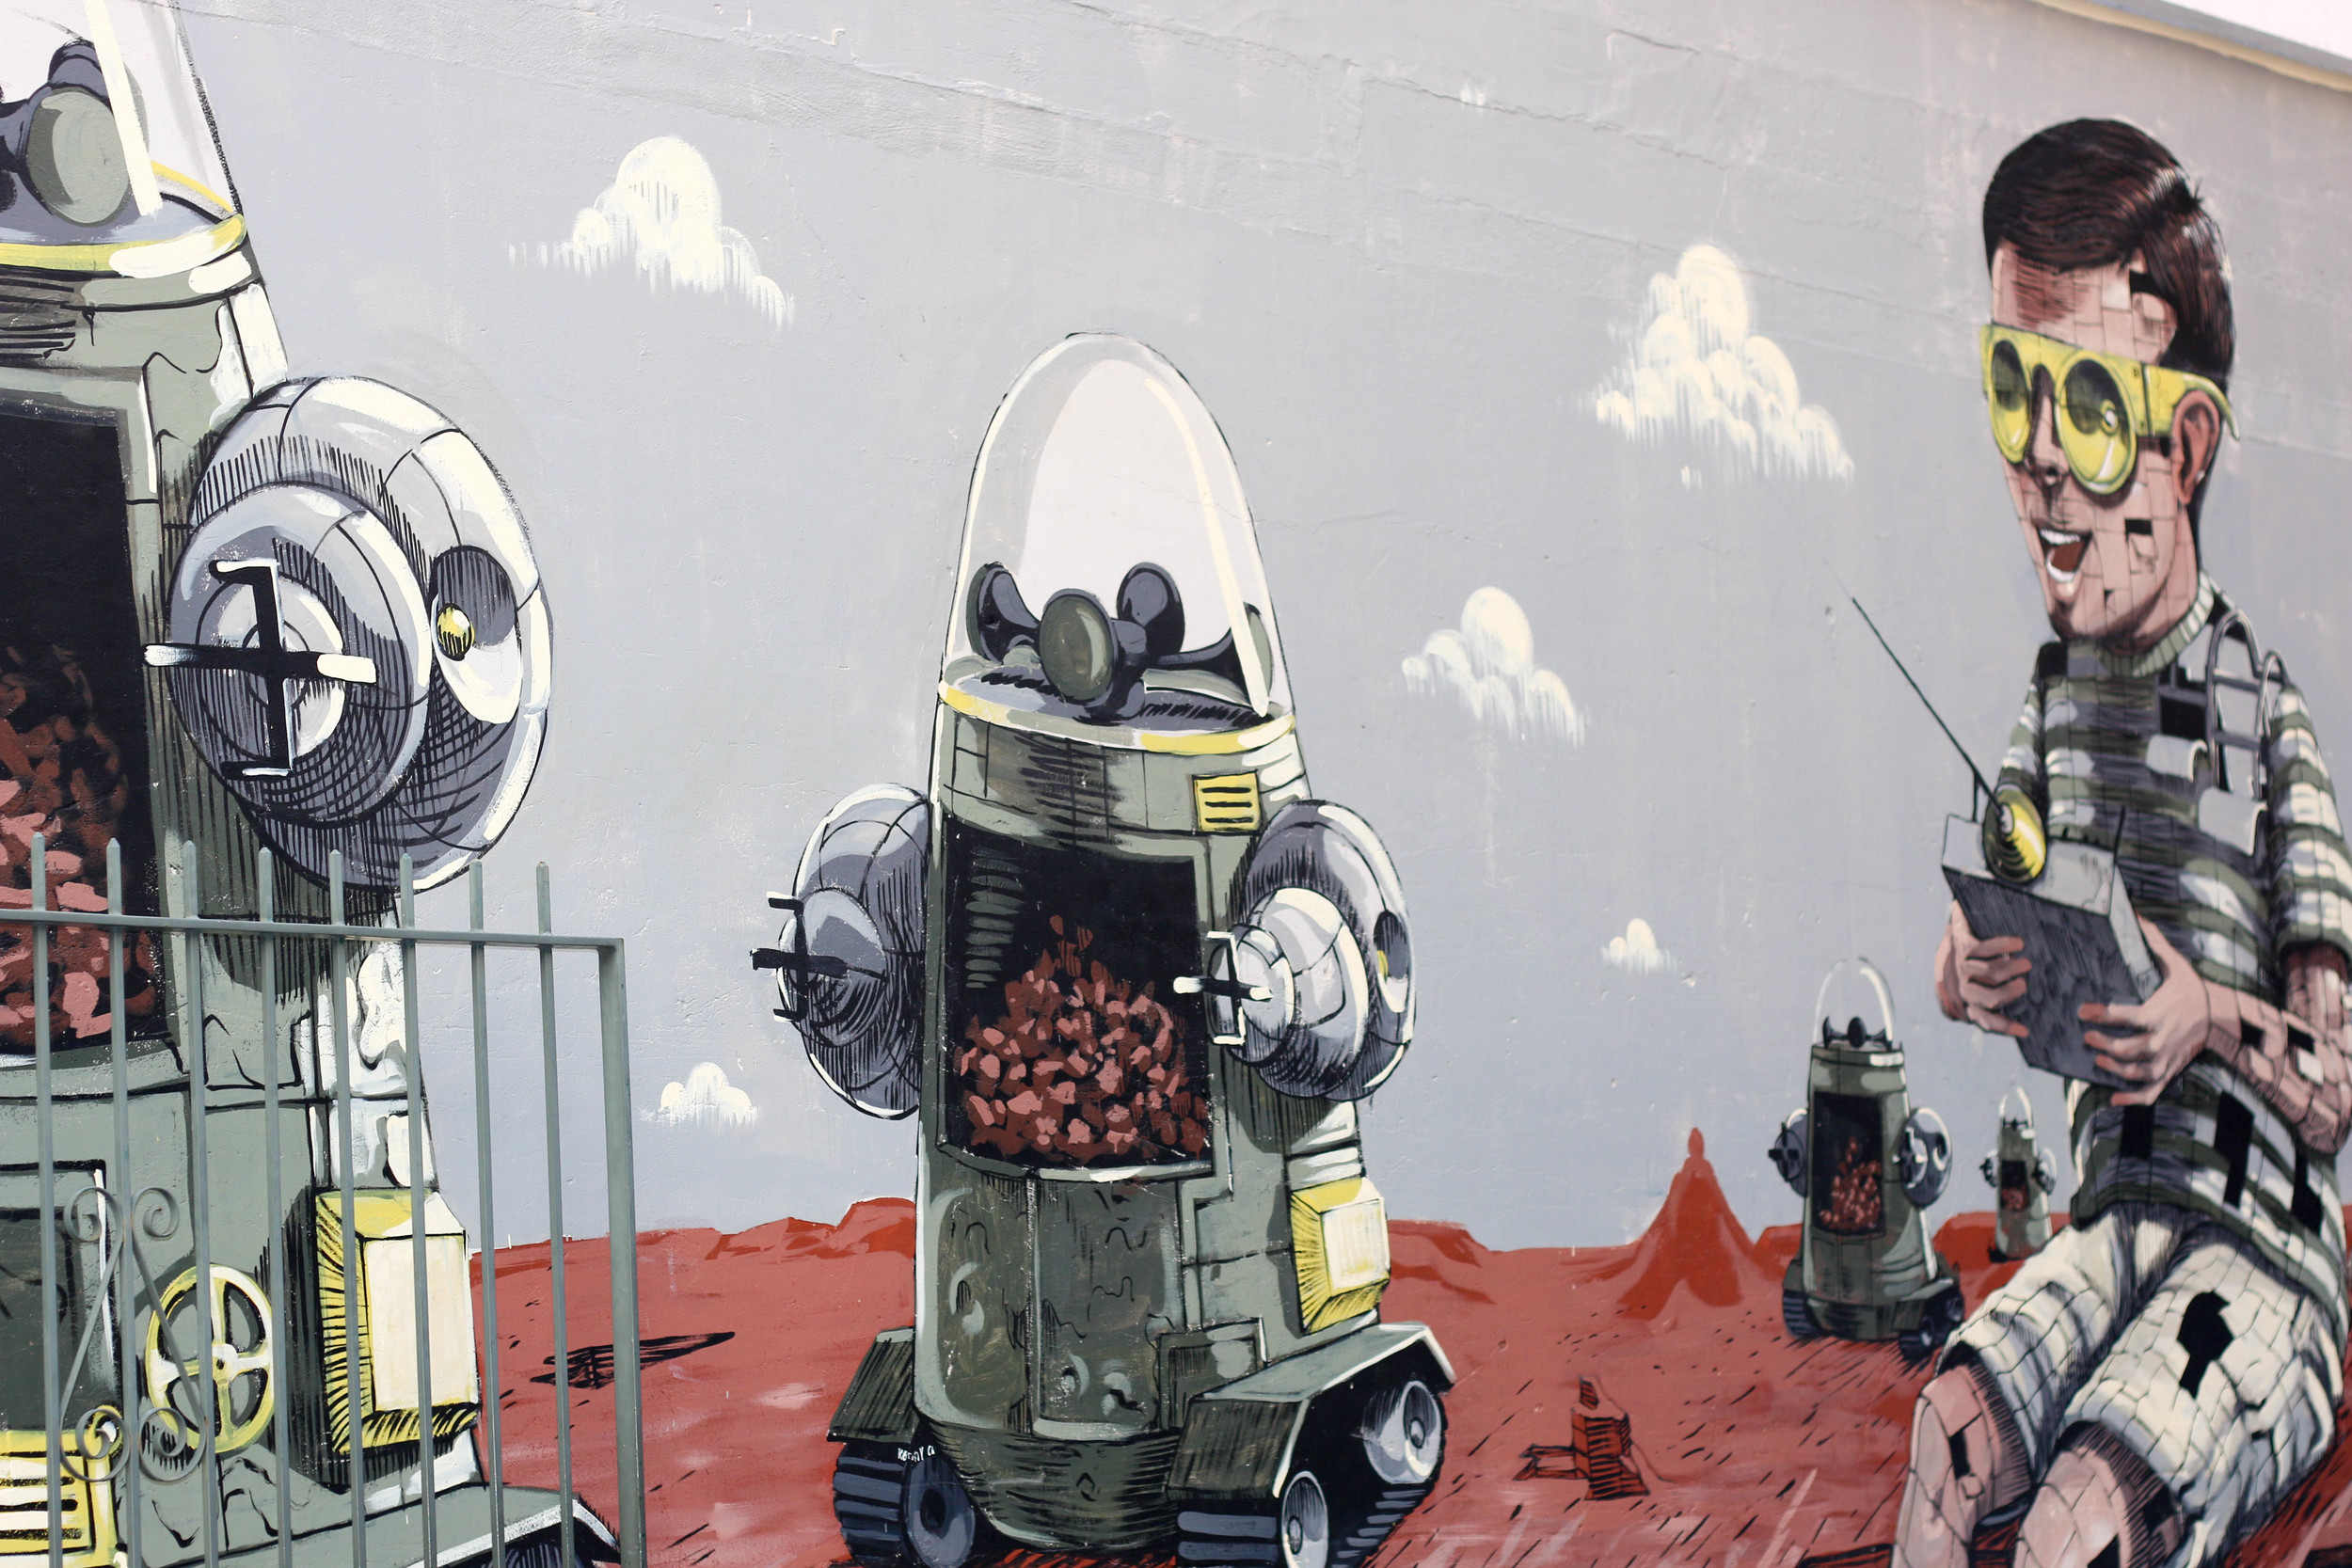 An example of some of the great street art in Wolf Lane, Perth